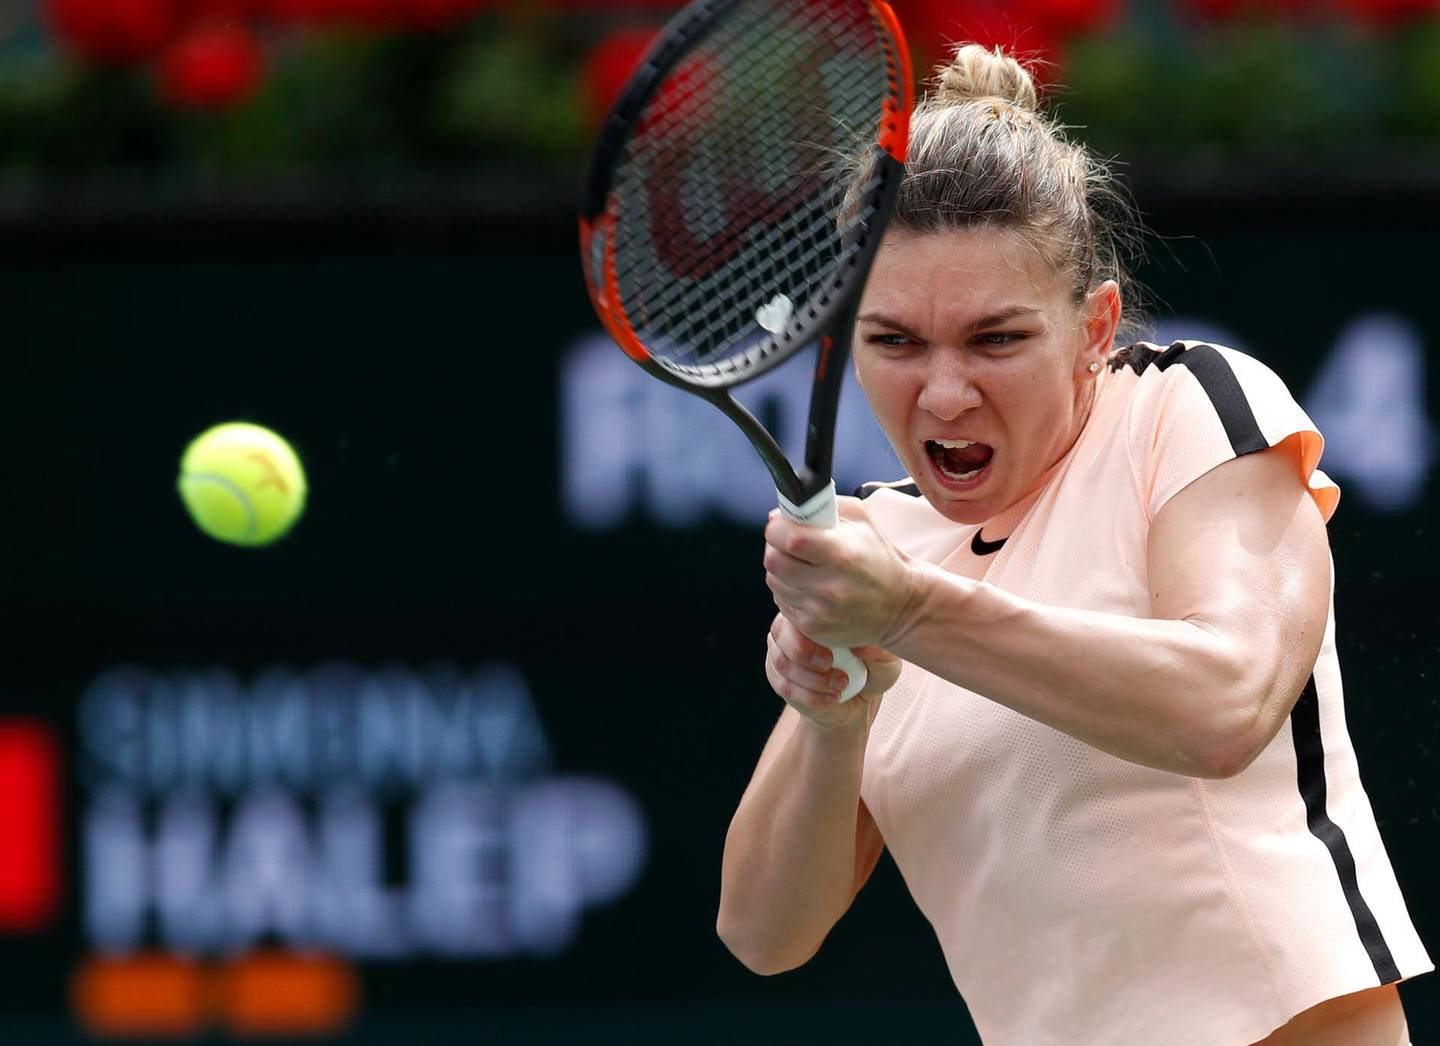 epa06601371 Simona Halep of Romania in action against Wang Qiang of China during the BNP Paribas Open at the Indian Wells Tennis Garden in Indian Wells, California, USA, 13 March 2018.  EPA/JOHN G. MABANGLO